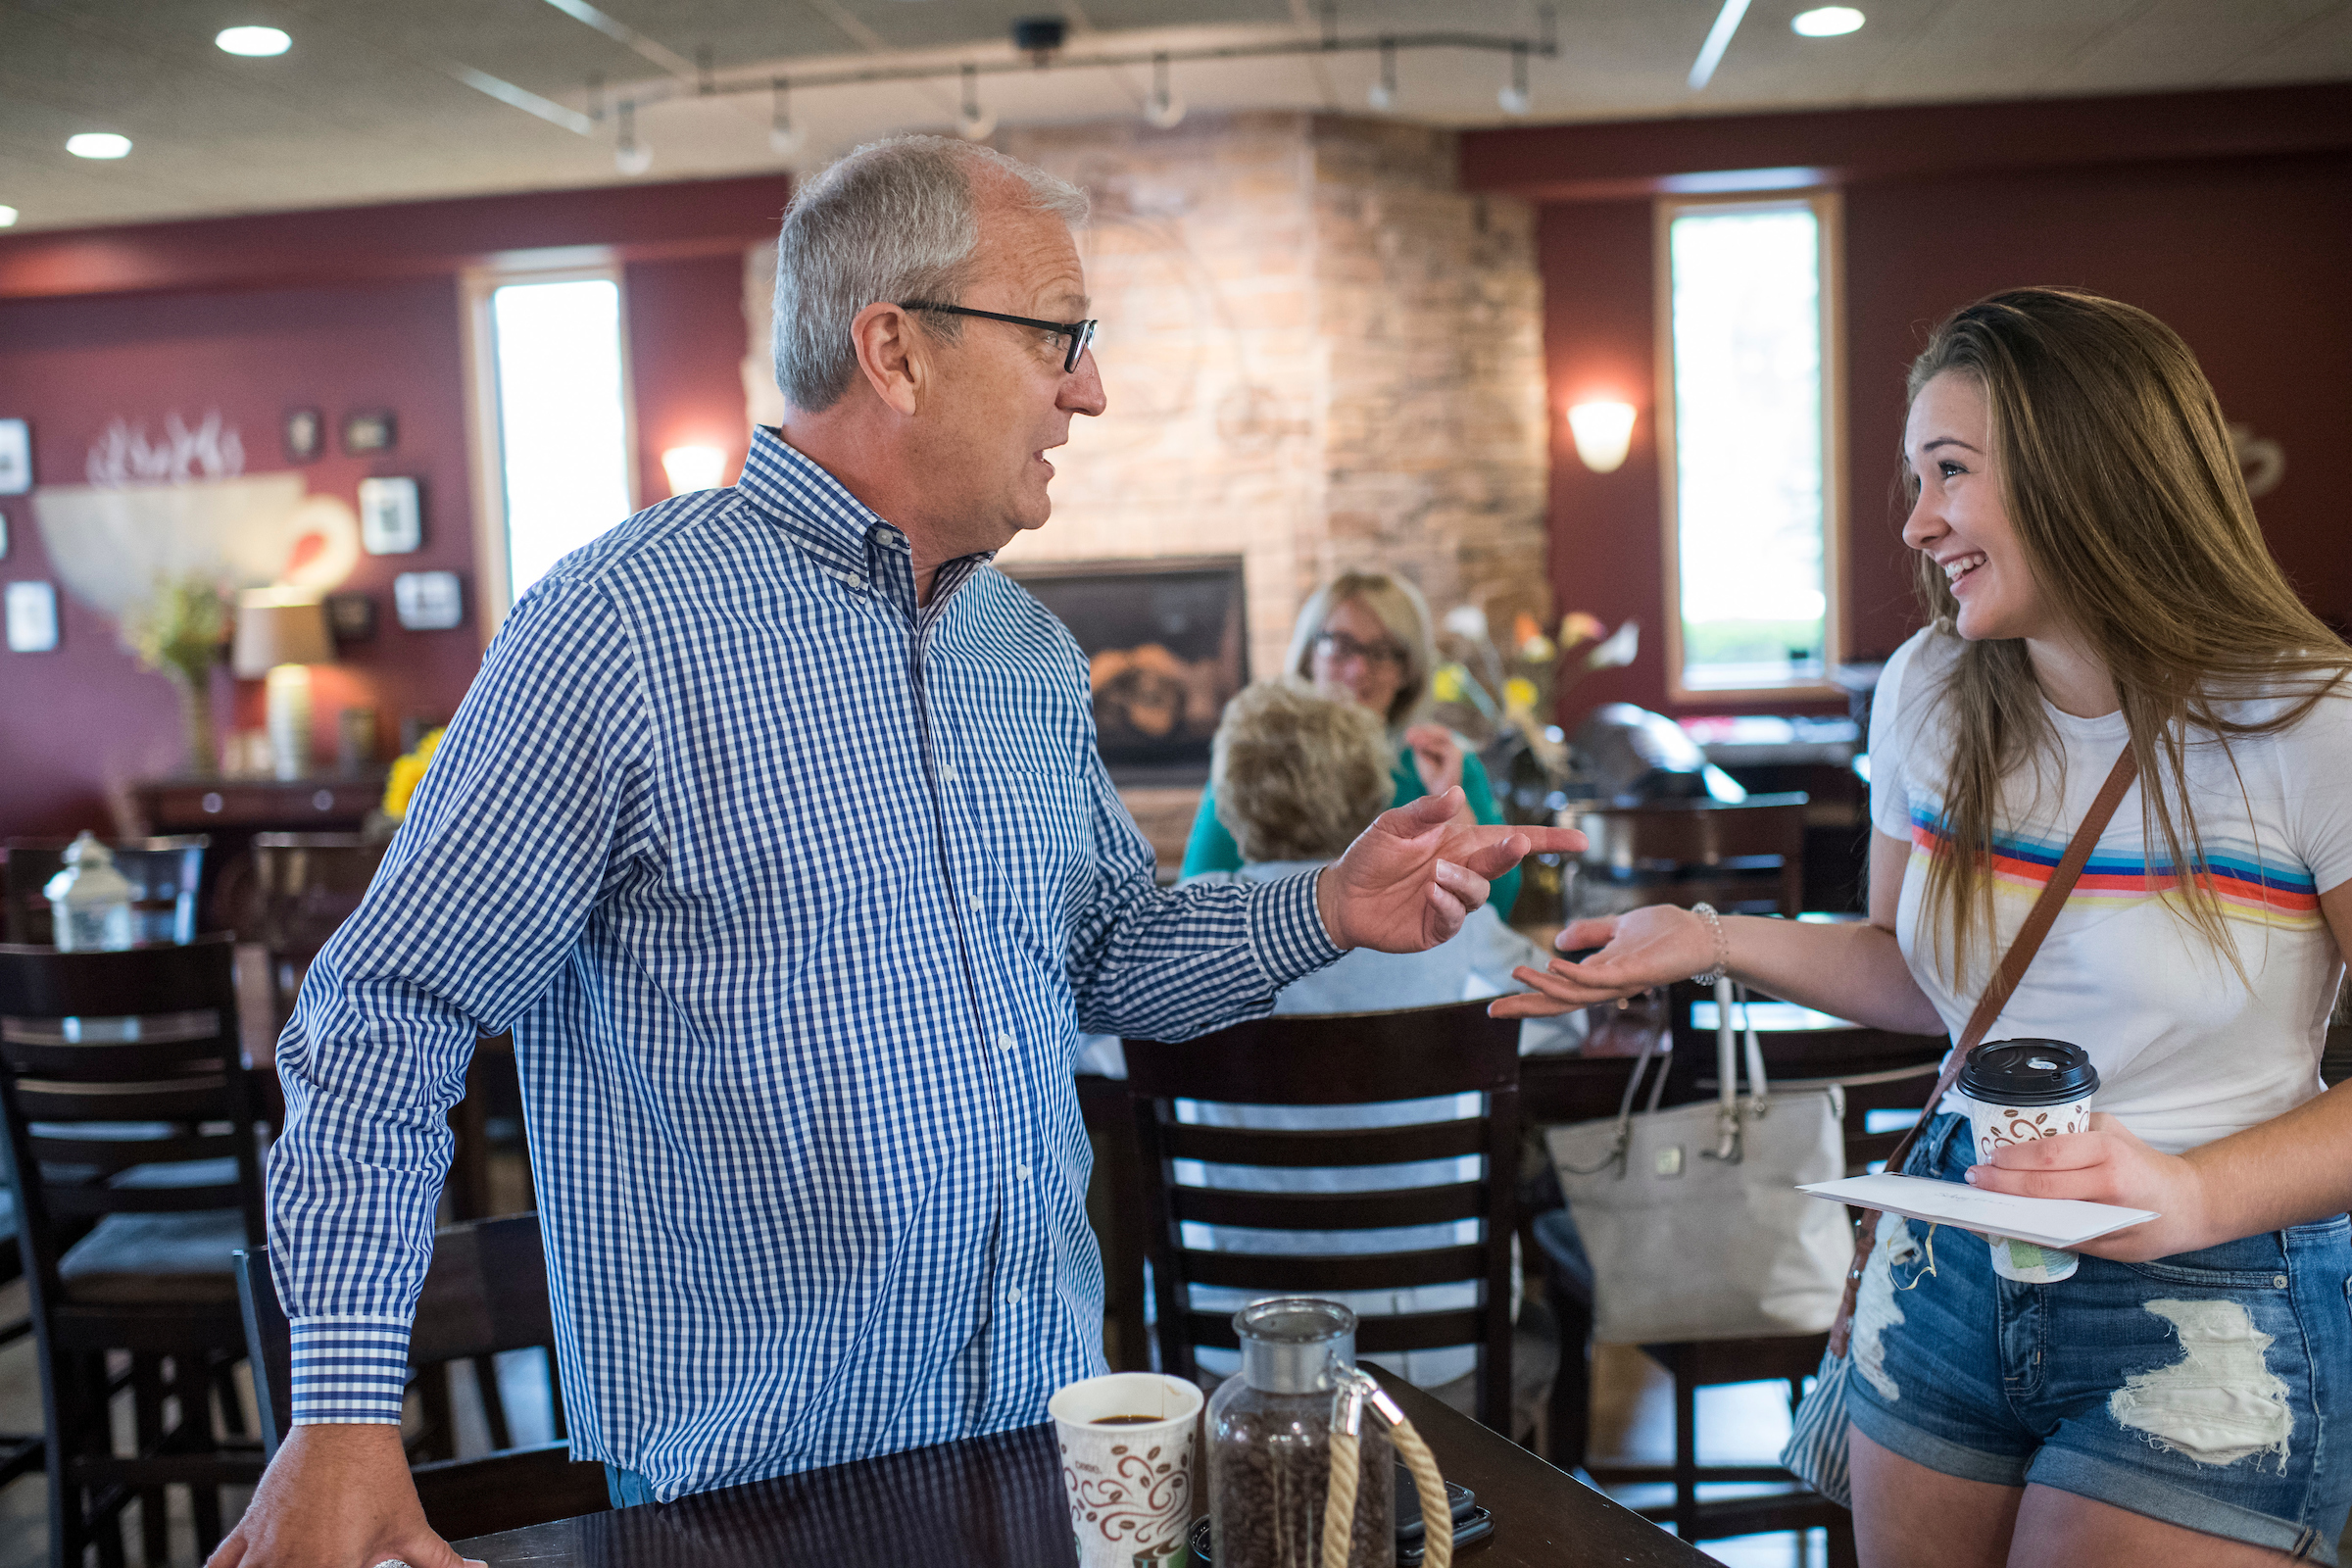 Rep. Kevin Cramer, R-N.D., talks with Sidney Larson, 18, at Boneshaker Coffee in Bismarck, N.D., on August 17, 2018. Cramer is running against Sen. Heidi Heitkamp, D-N.D., for the North Dakota Senate seat. (Photo By Tom Williams/CQ Roll Call)